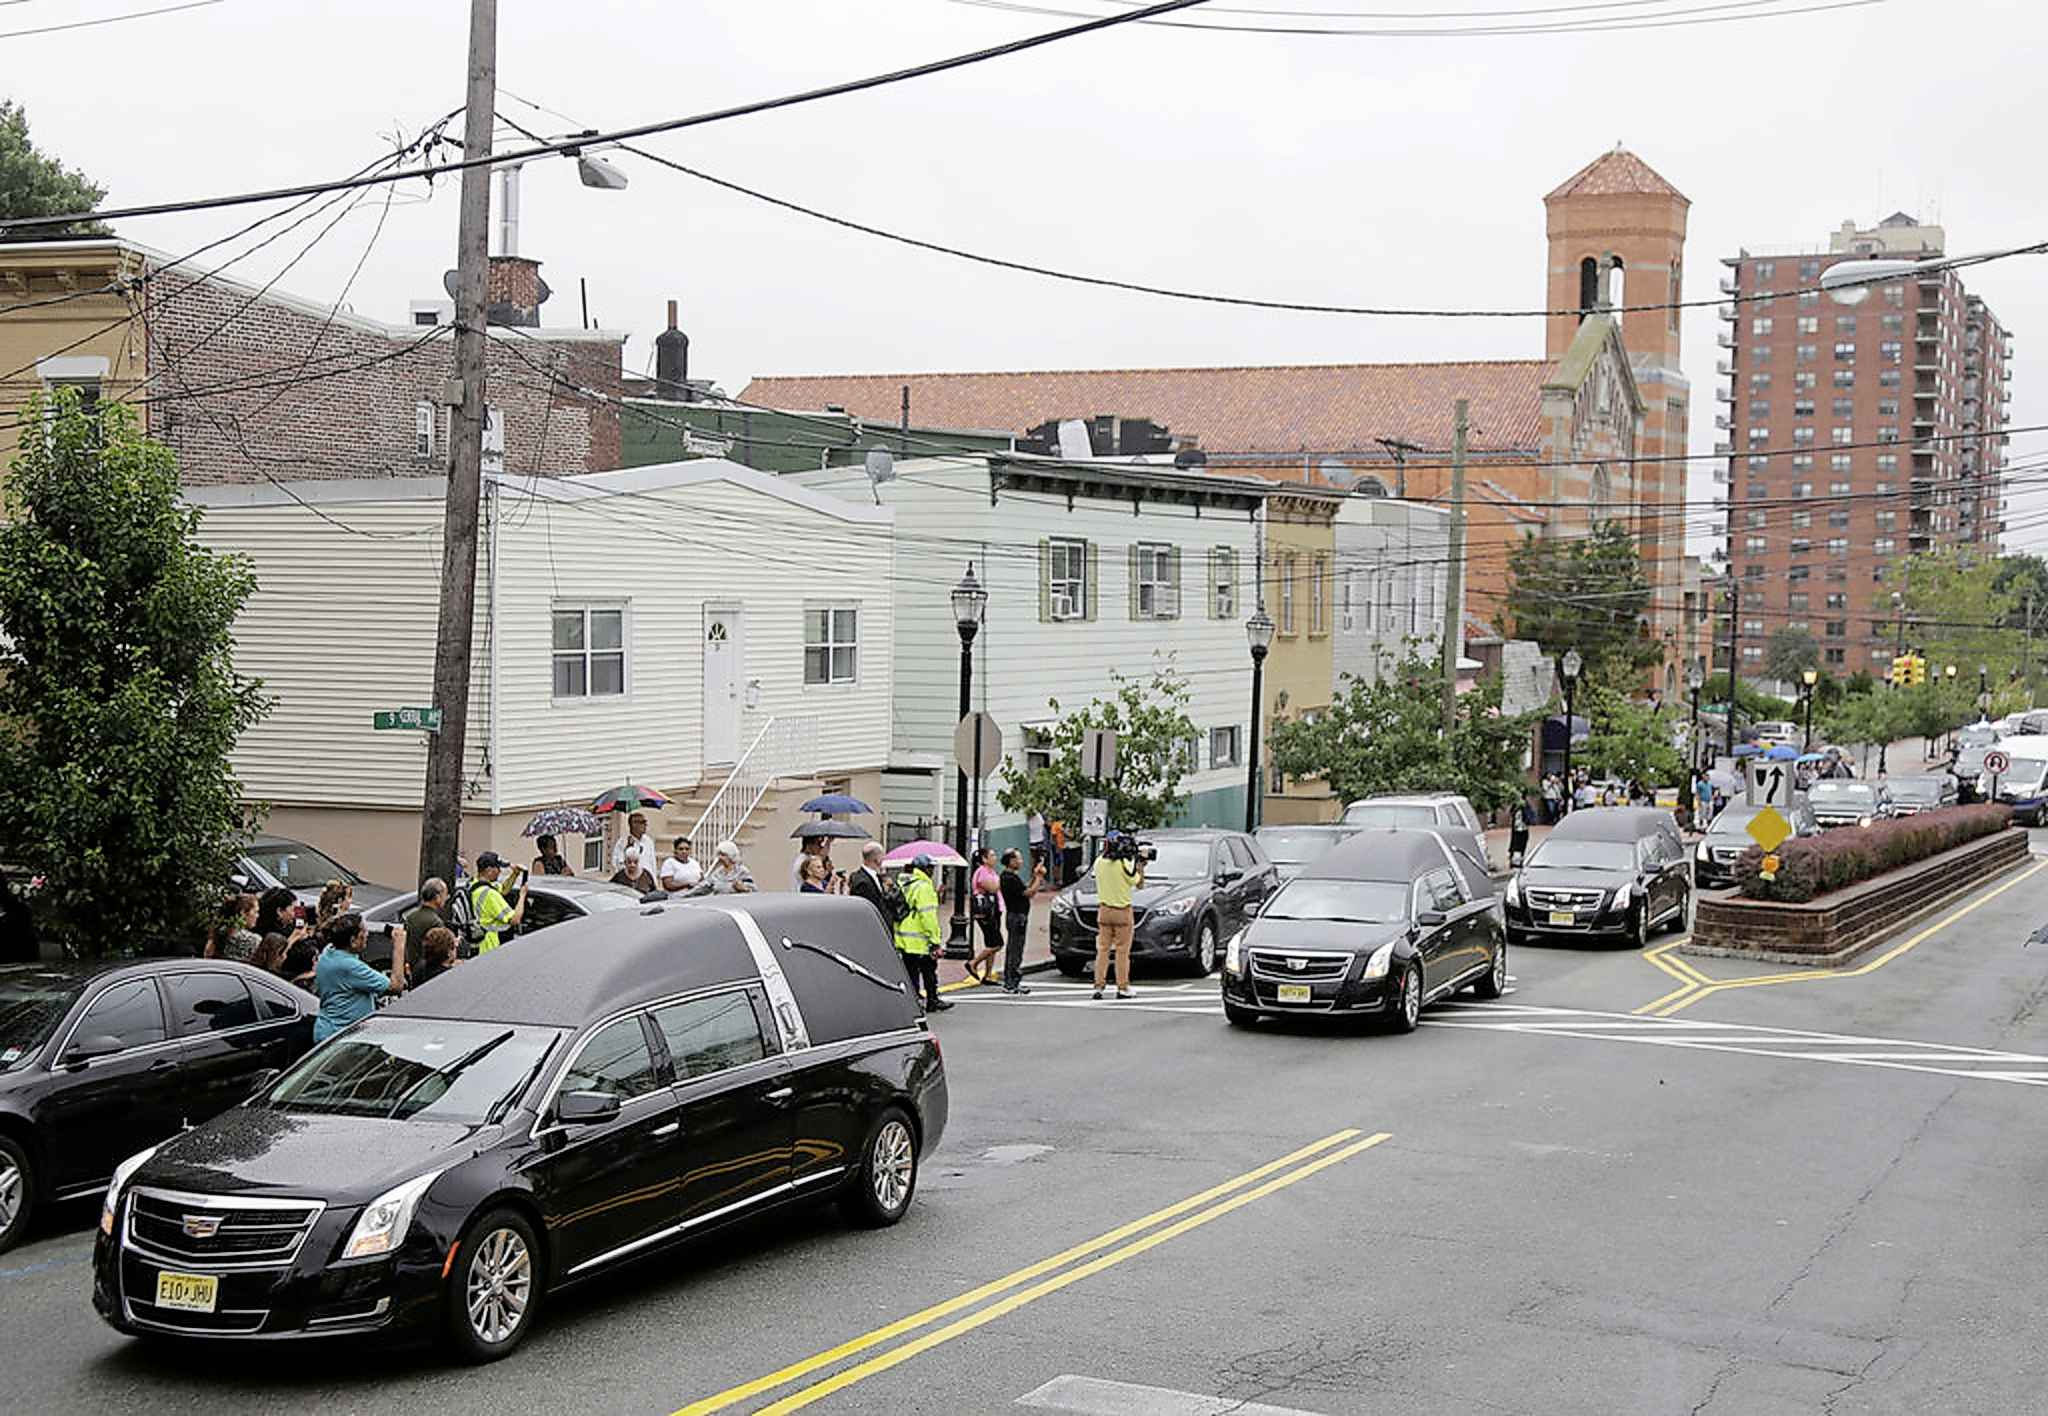 Police use to escort funeral service processions, but they no longer guard intersections unless the funeral is a high-profile event expected to attract an unusually large number of people. (Seth Wenig / The Associated Press Files)